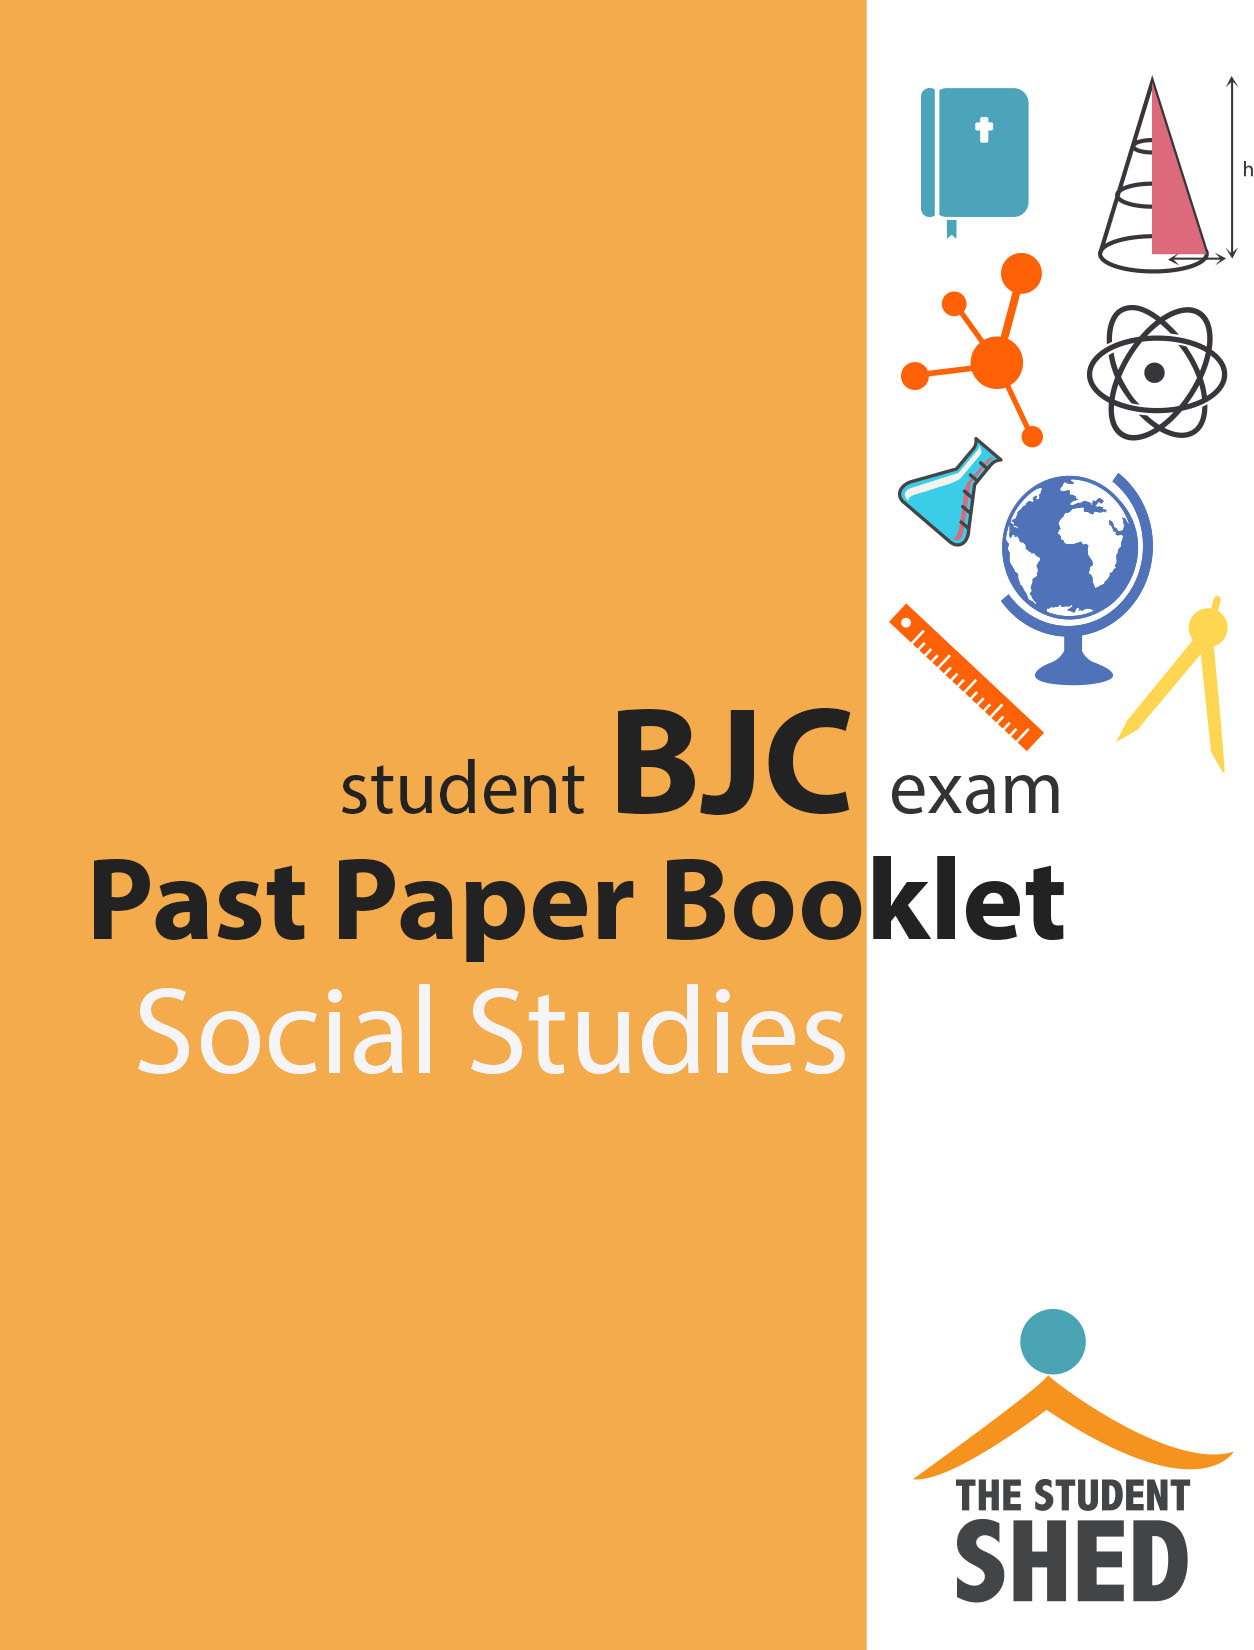 social studies bjc coursework 2015